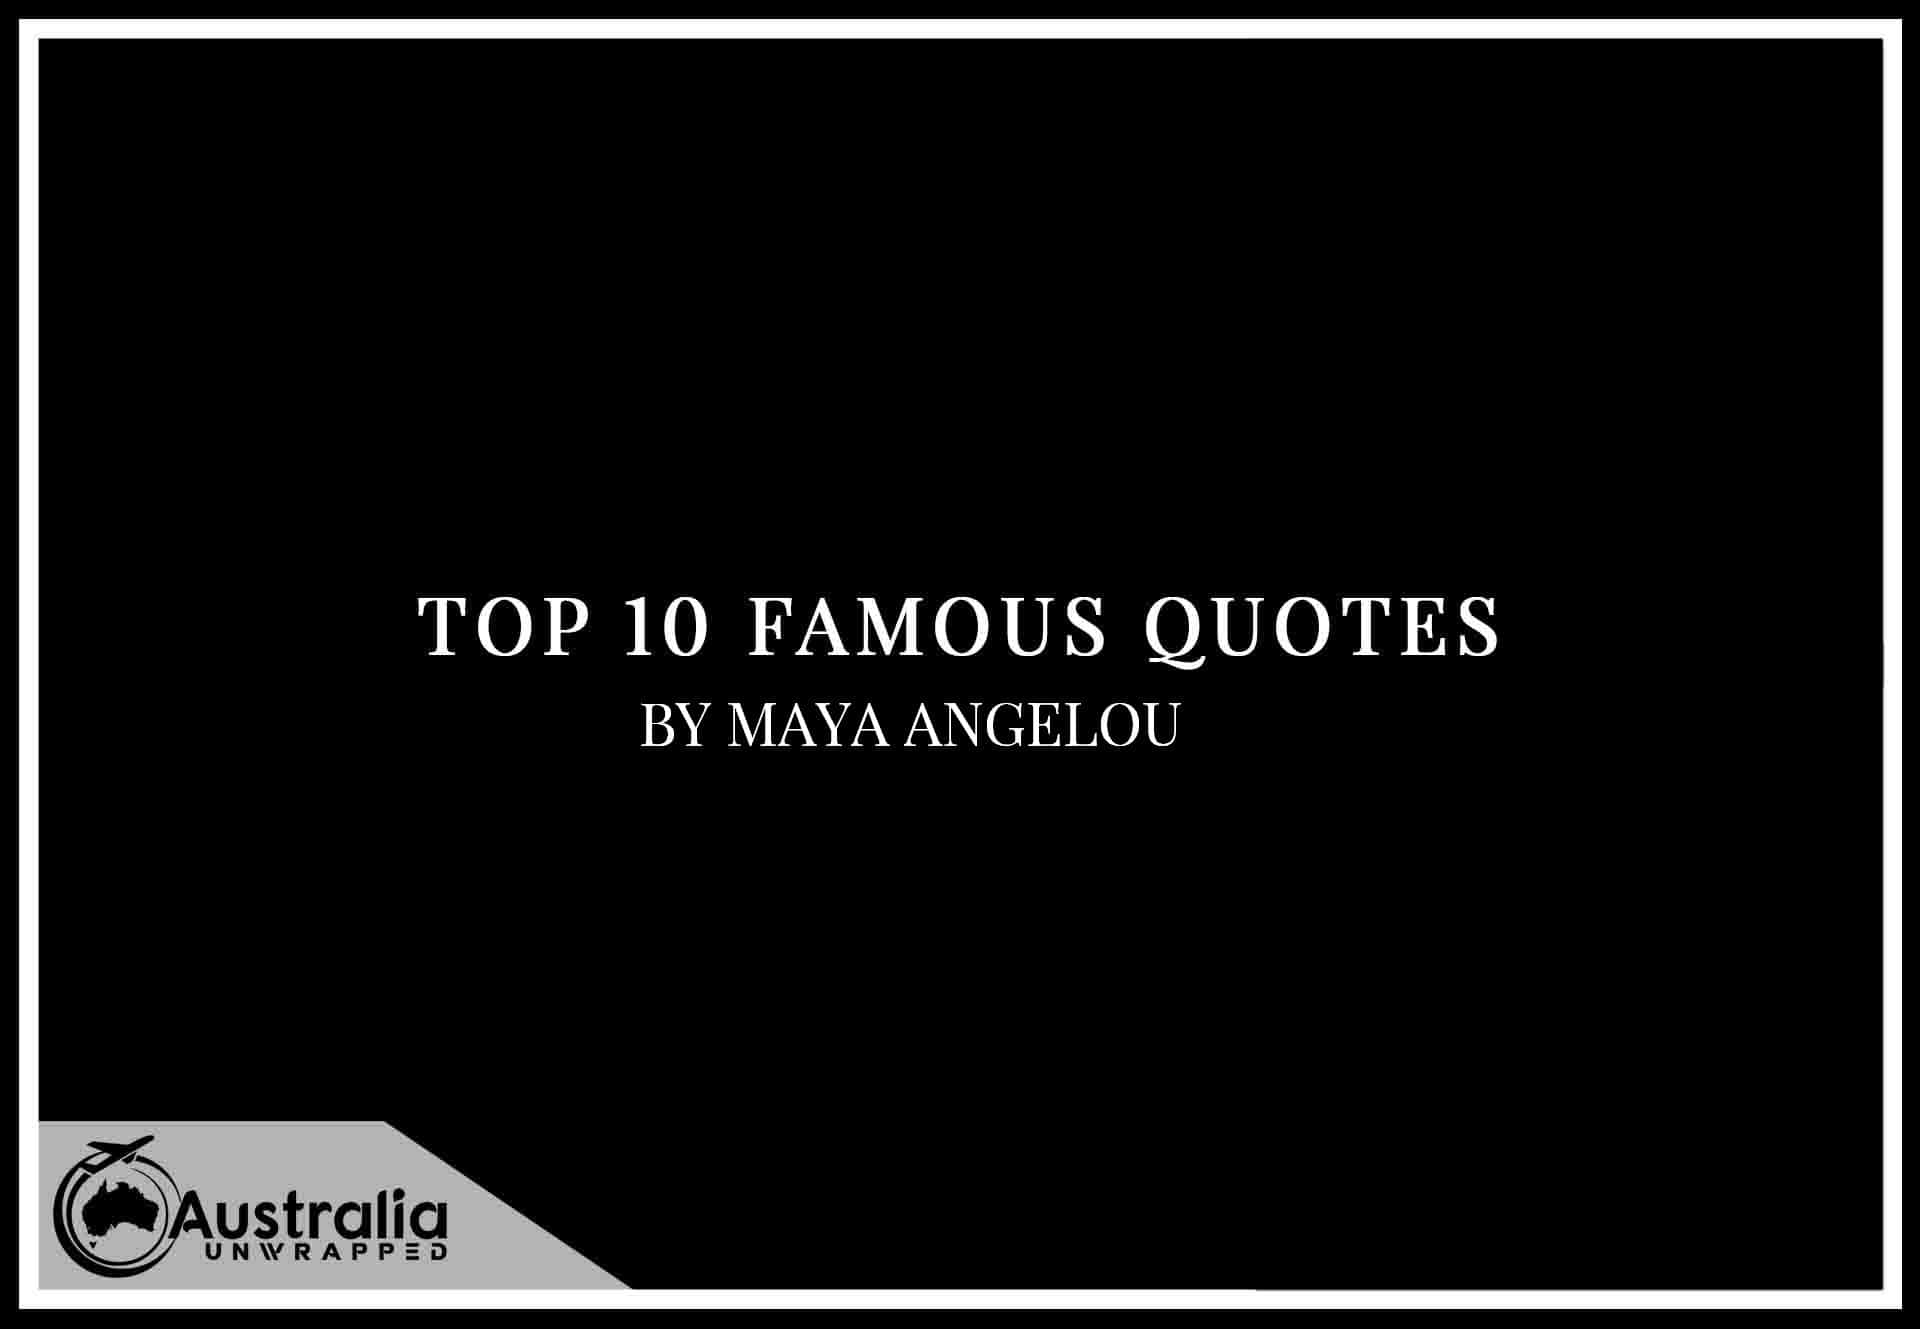 Top 10 Famous Quotes by Author Maya Angelou